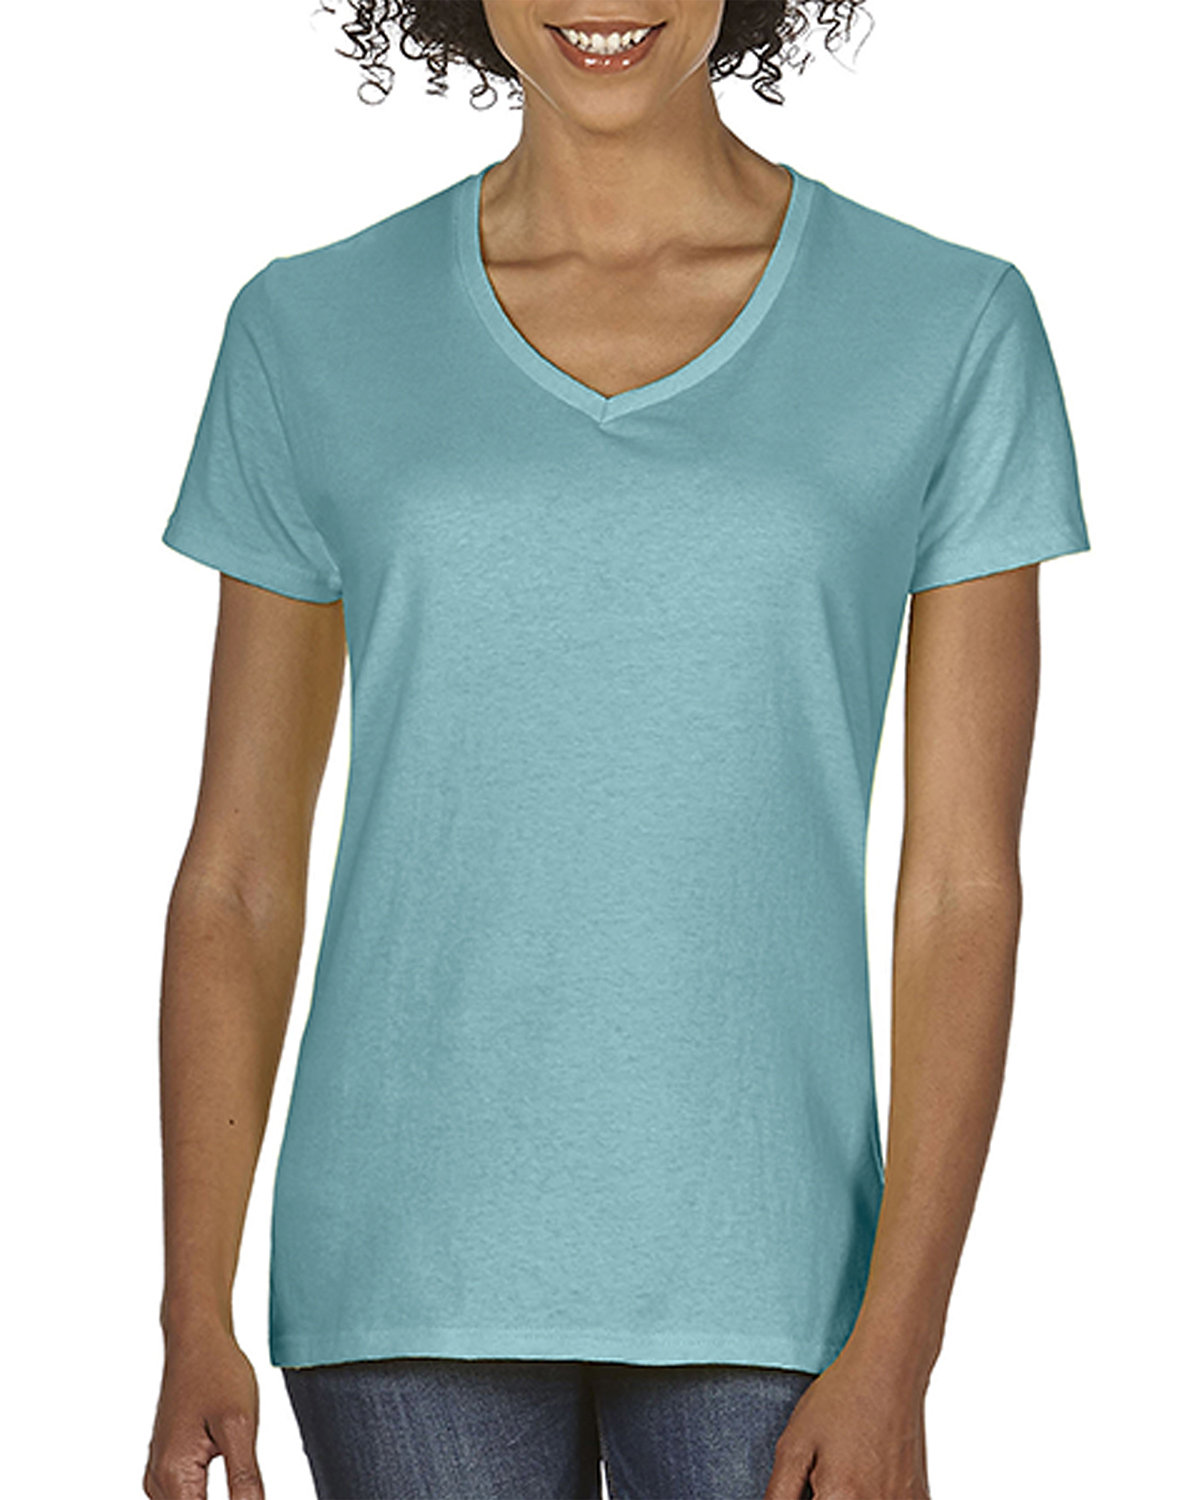 Comfort Colors Ladies' Midweight V-Neck T-Shirt CHALKY MINT